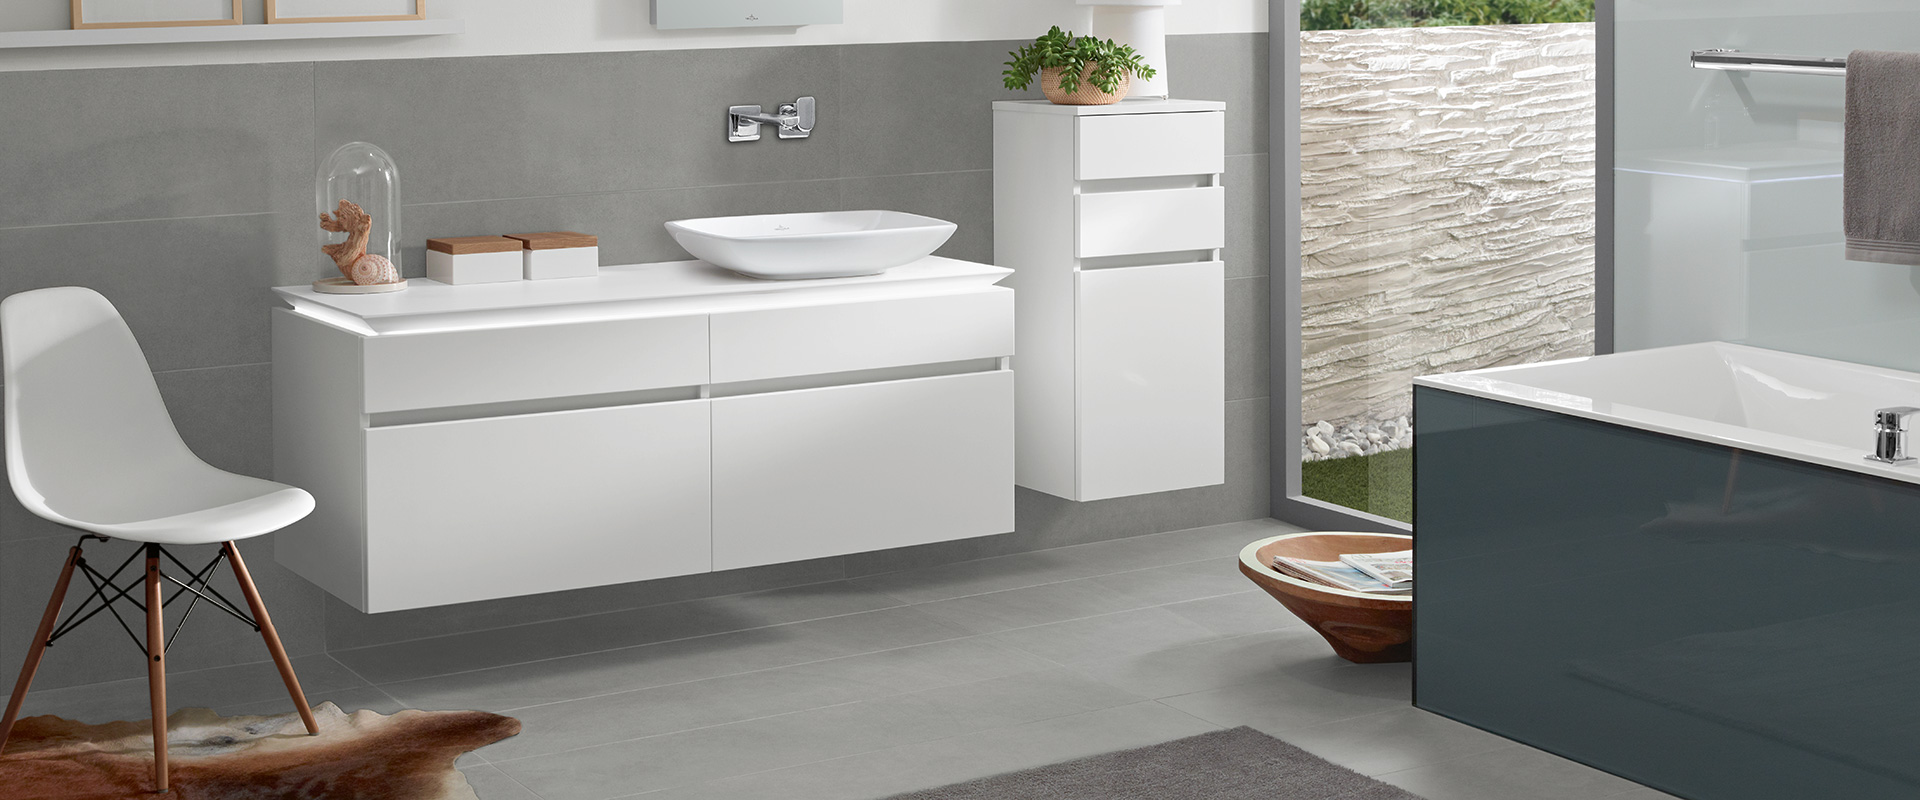 levanto frn levanto frn levanto frn levanto bathroom furniture - Villeroy And Boch Bathroom Cabinets